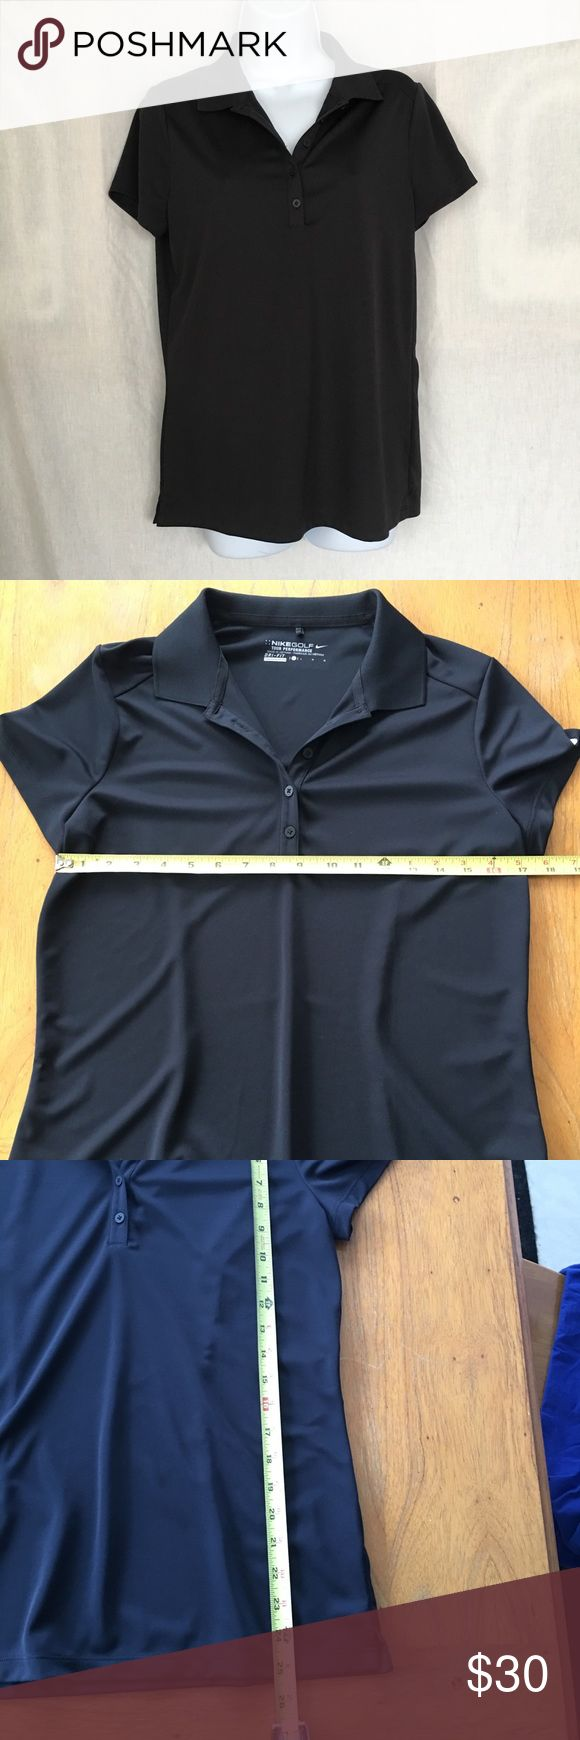 Nike Golf Dri-FIT Black Pebble Texture Polo Simple and sleek, this men's shirt can be worn to golf in, to the office, or on the weekend around the house. It'll even work under a blazer or sport jacket. The Nike Golf Dri-FIT Black Pebble Texture Polo has been designed with a self-fabric collar, two-button placket and pearlized buttons. Nike Tops Tees - Short Sleeve